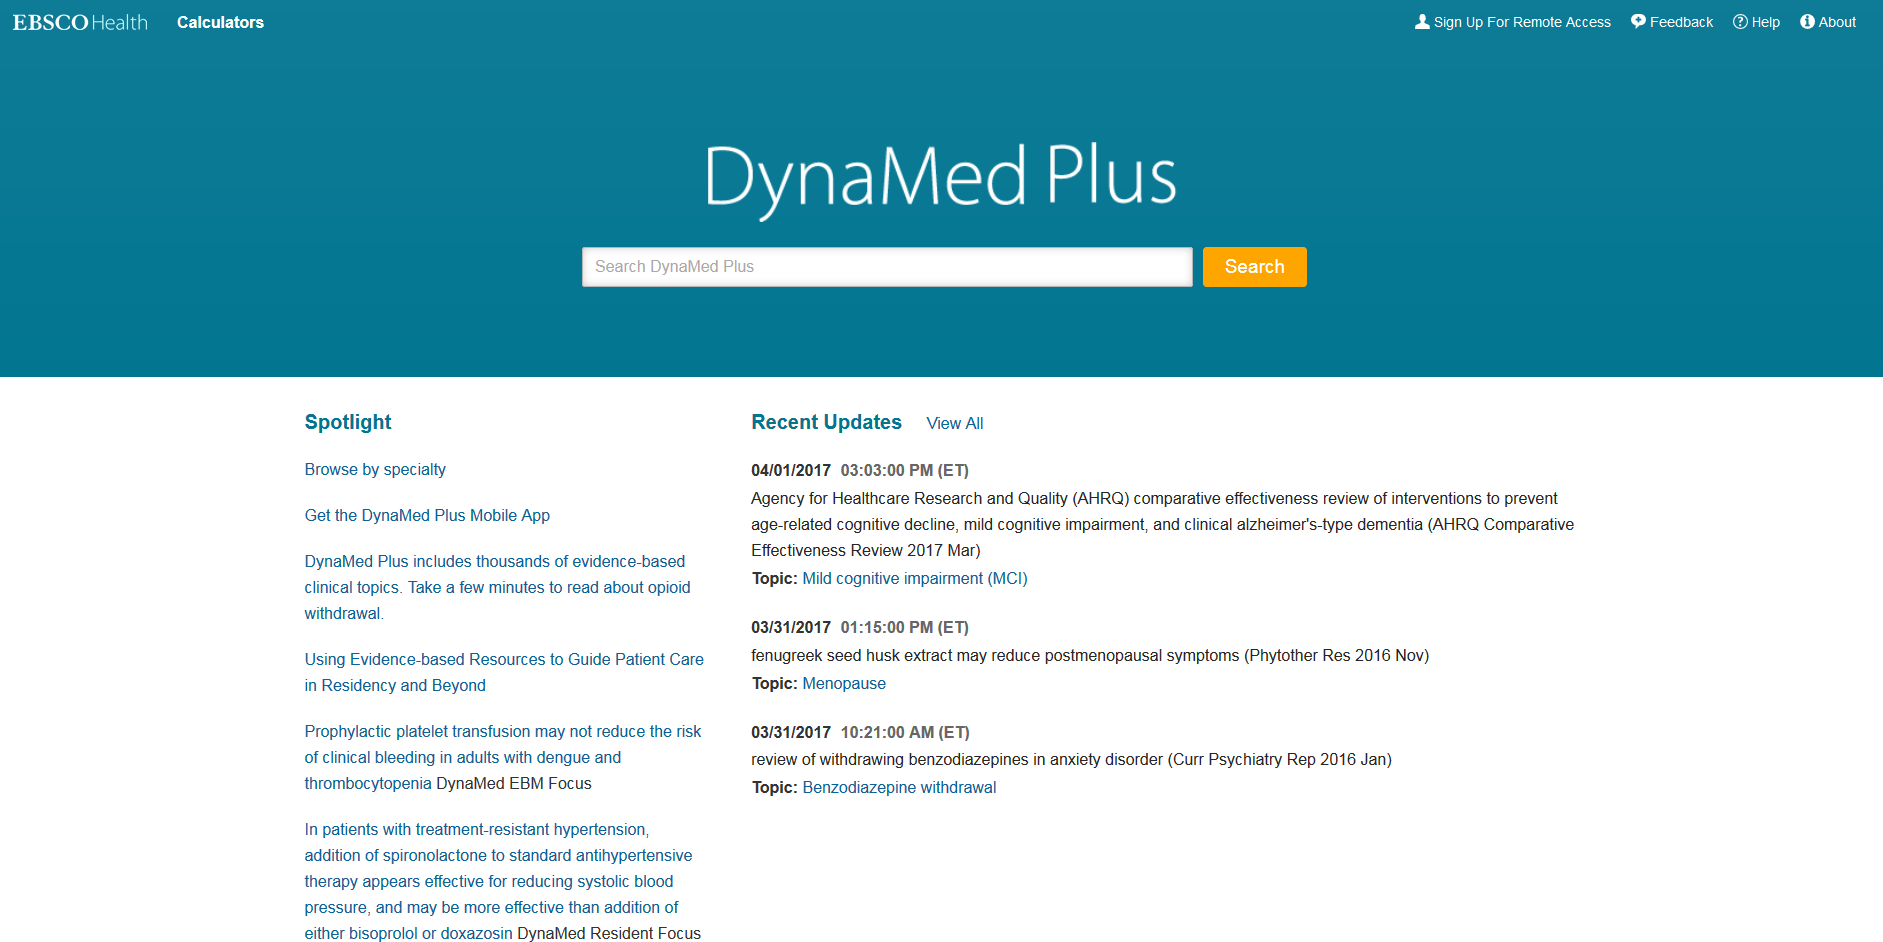 DynaMed Plus Screenshot